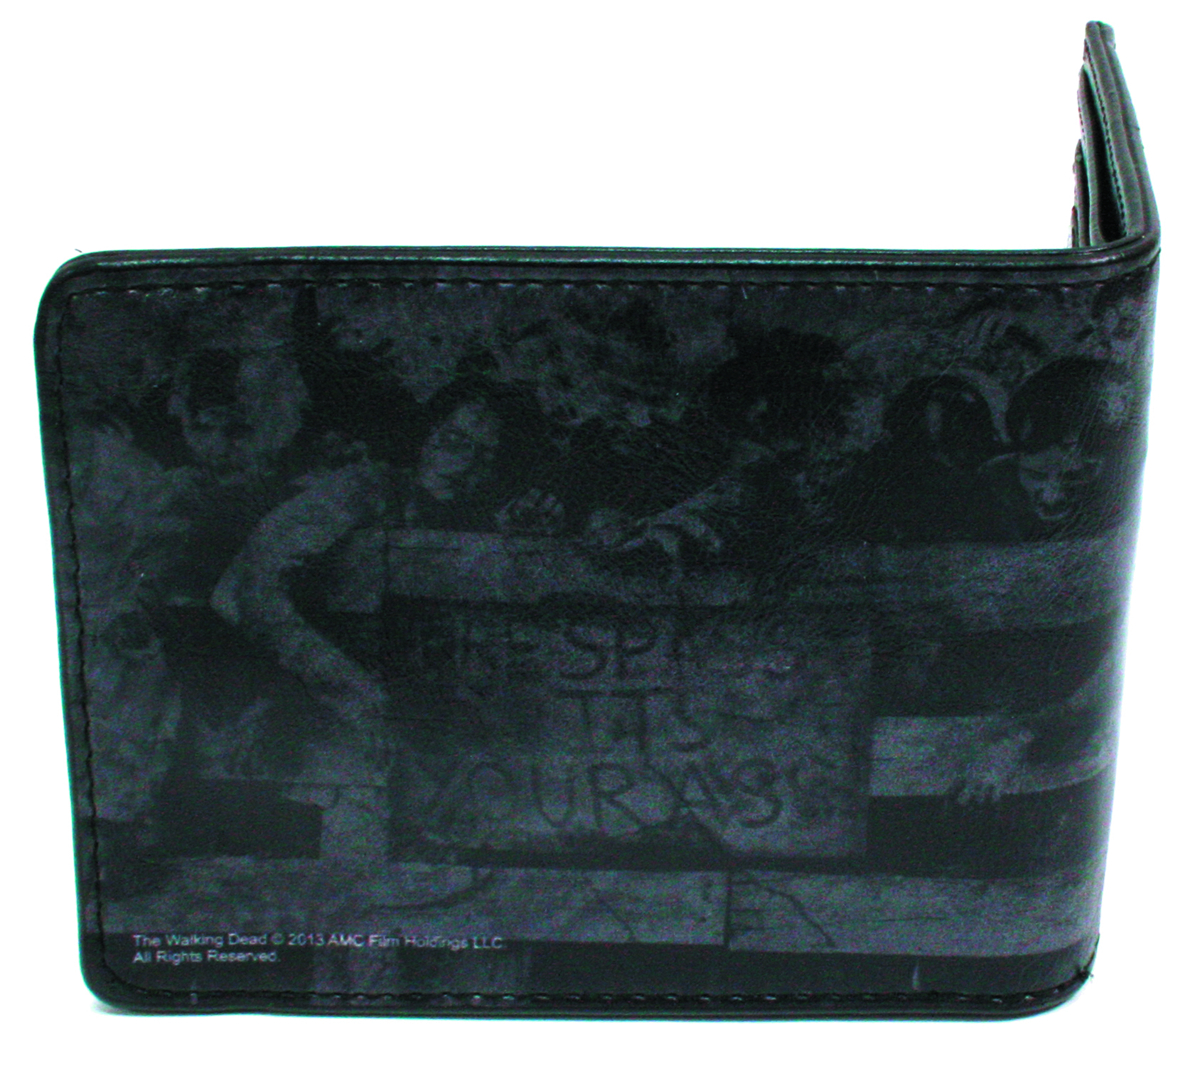 WALKING DEAD ZOMBIE WOMAN BI-FOLD WALLET